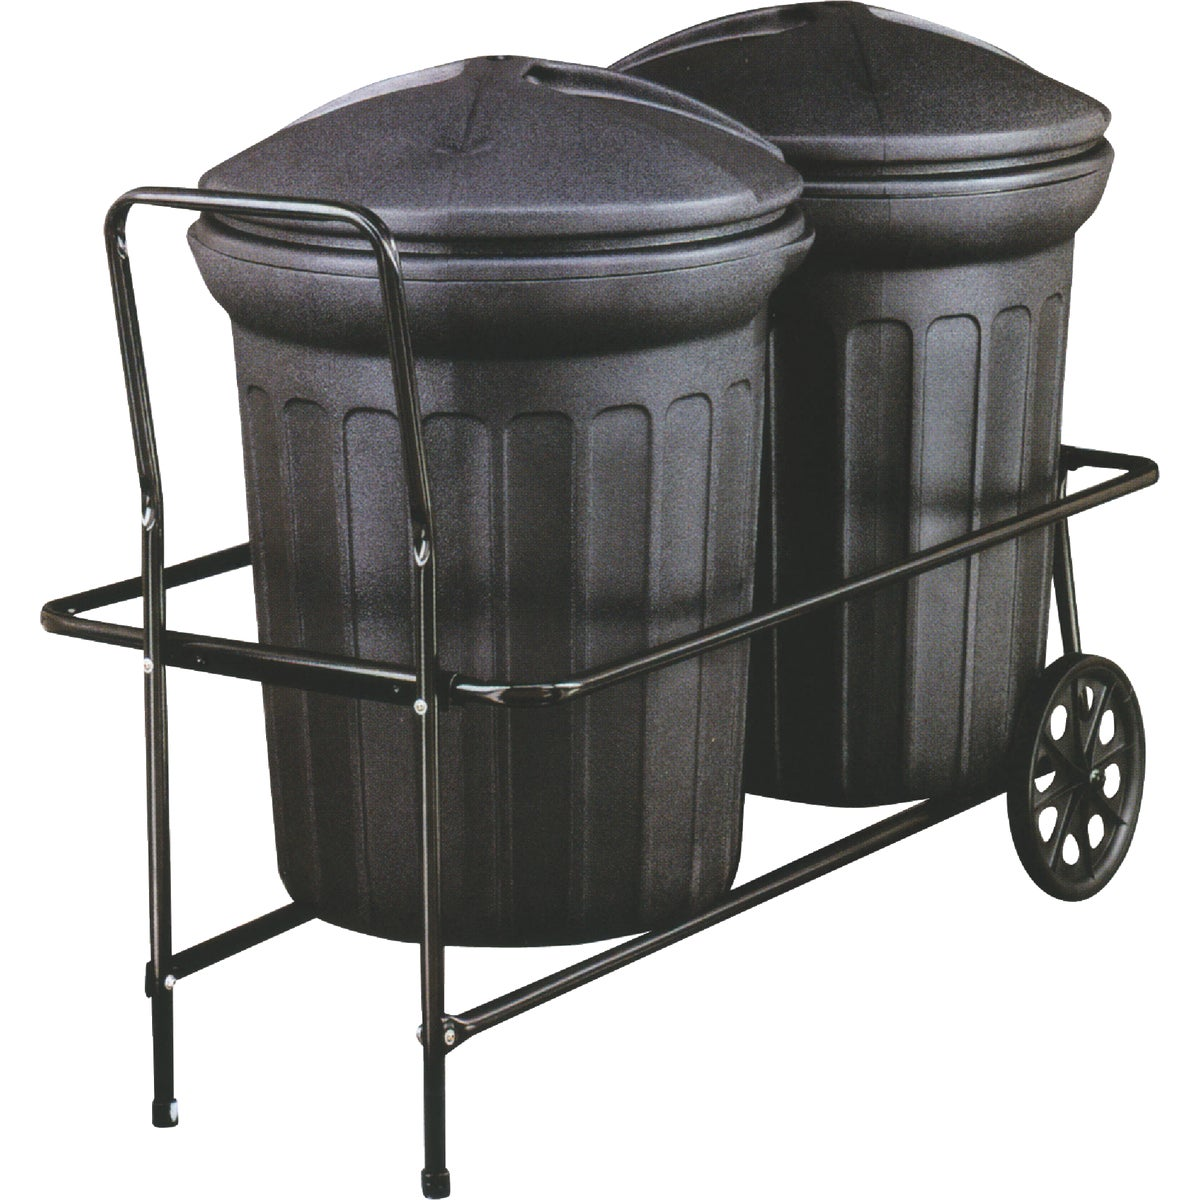 TRASH CAN HAND CART